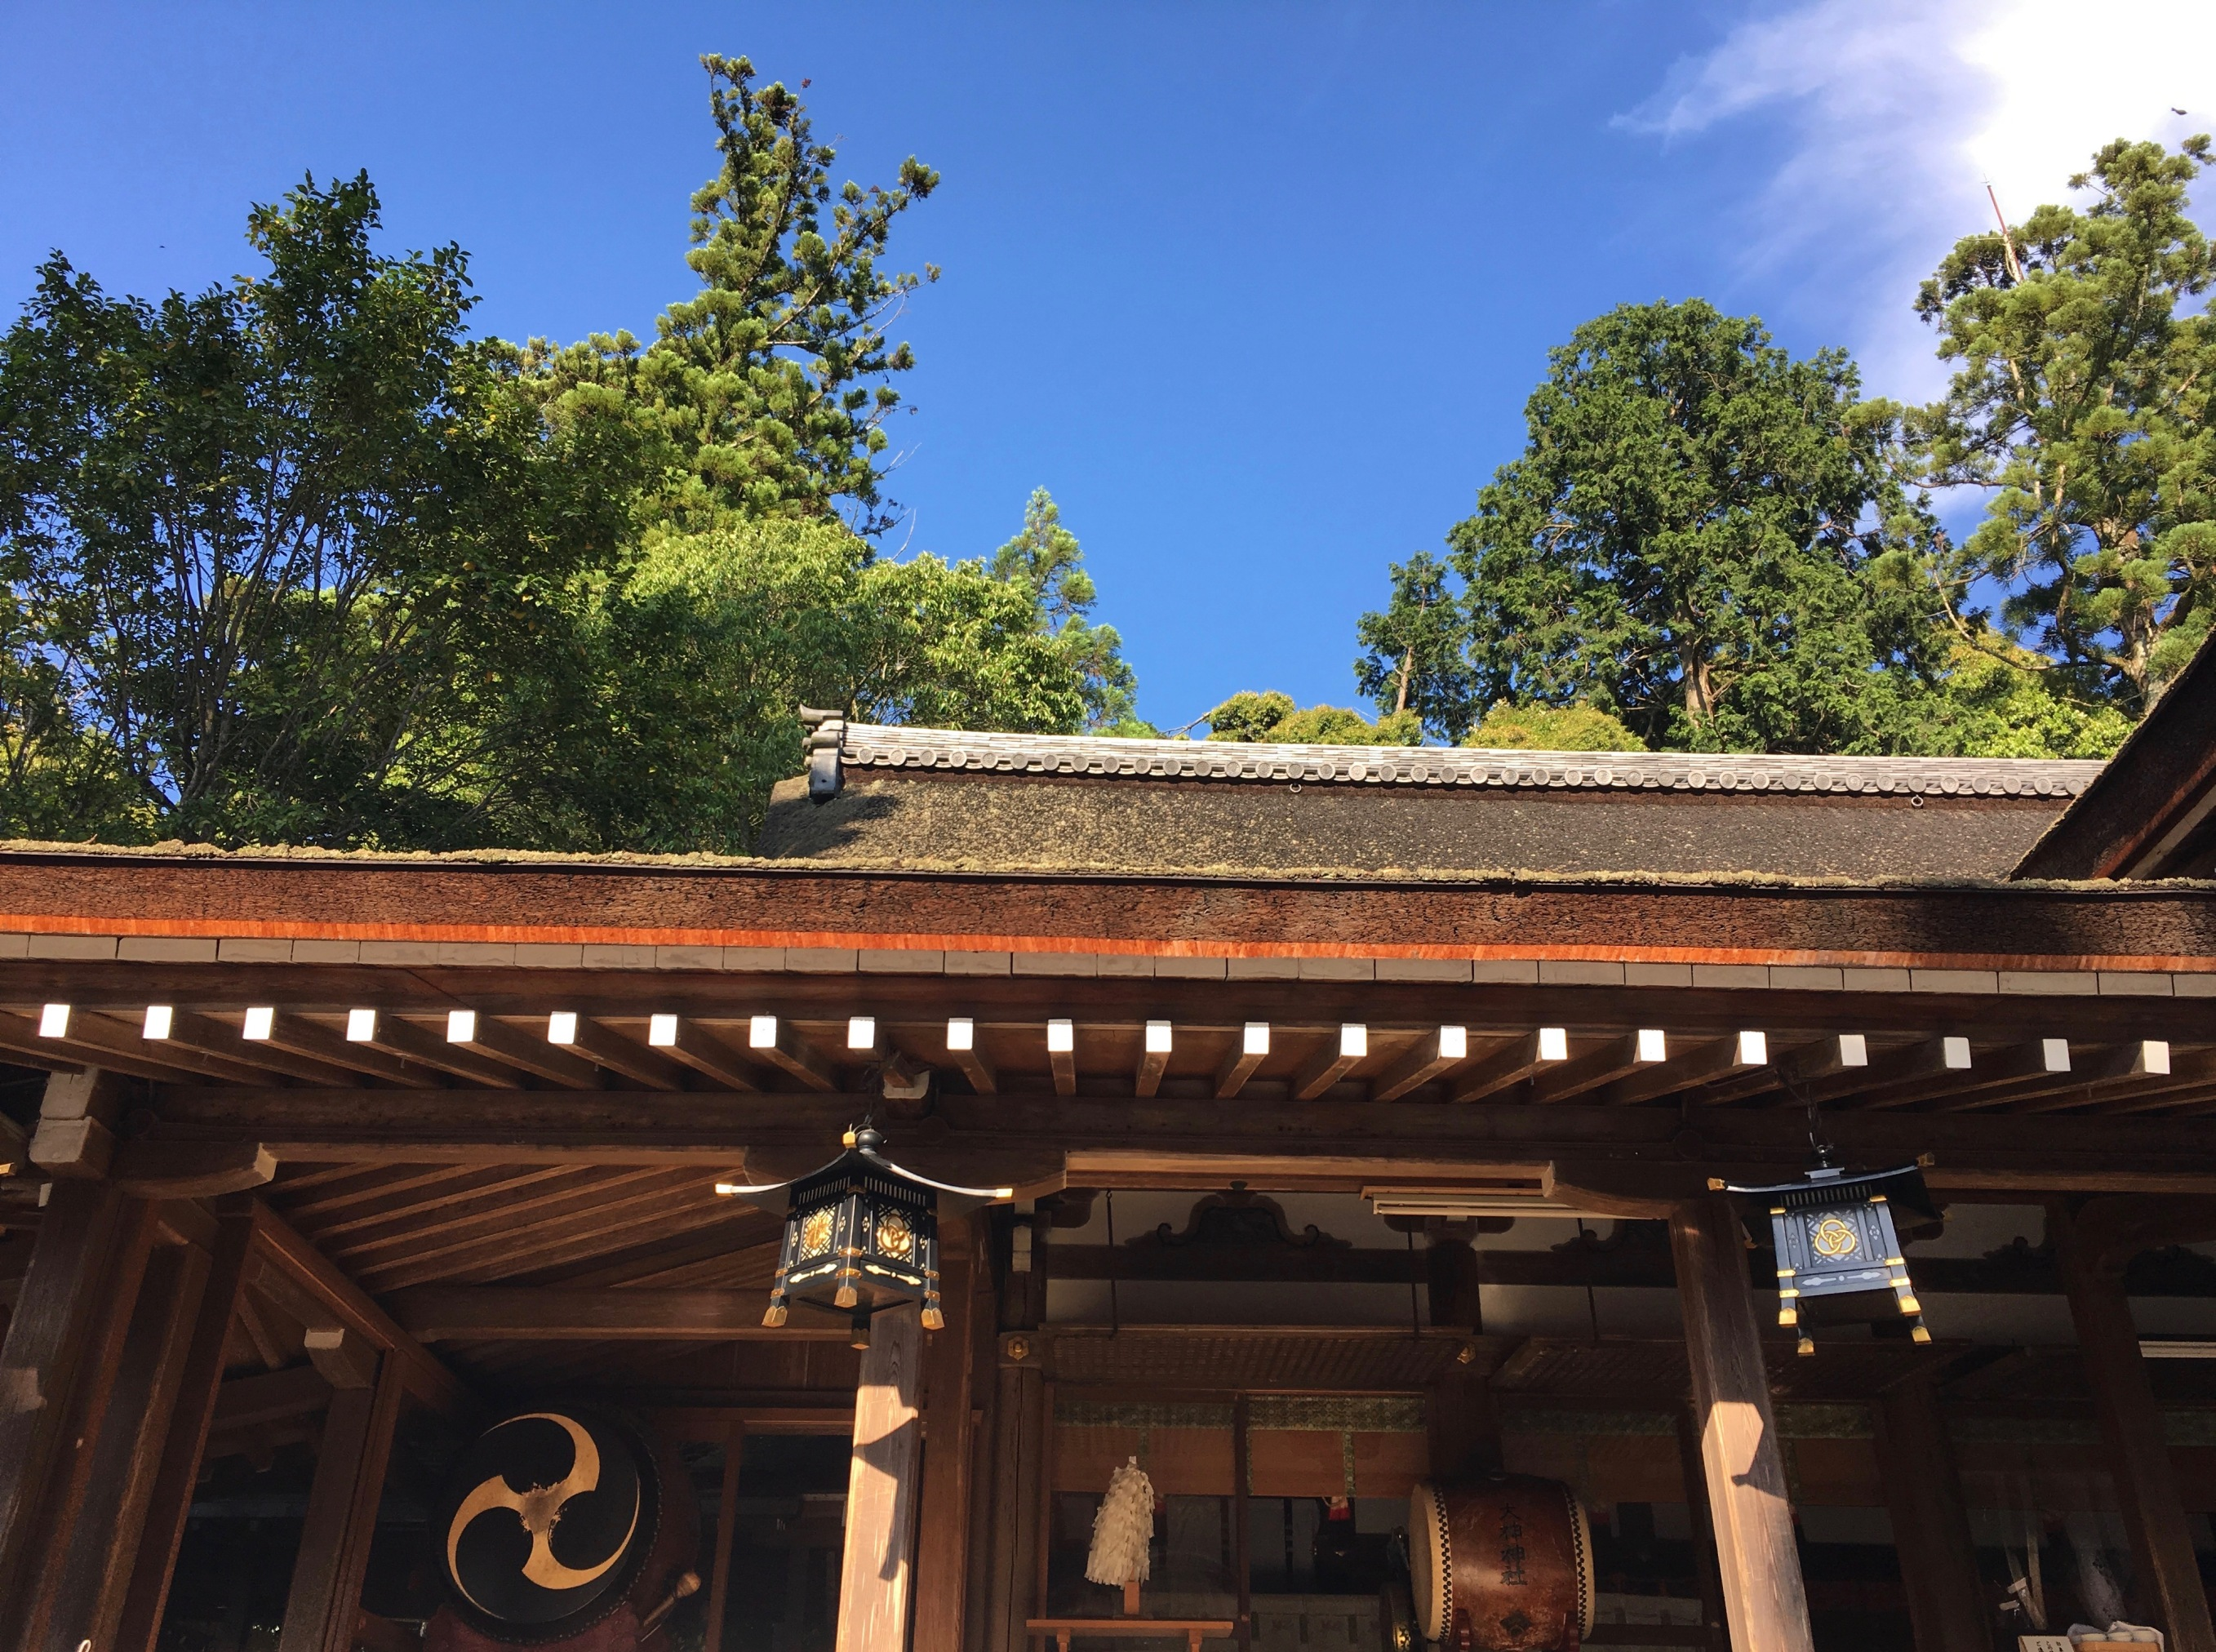 Two taiko (drums) stand proud at Omiwa Shrine in Nara Prefecture. Drums are used in both Shinto and Buddhist rituals and festivals. I have heard the taiko referred to as the voice of the Buddha.